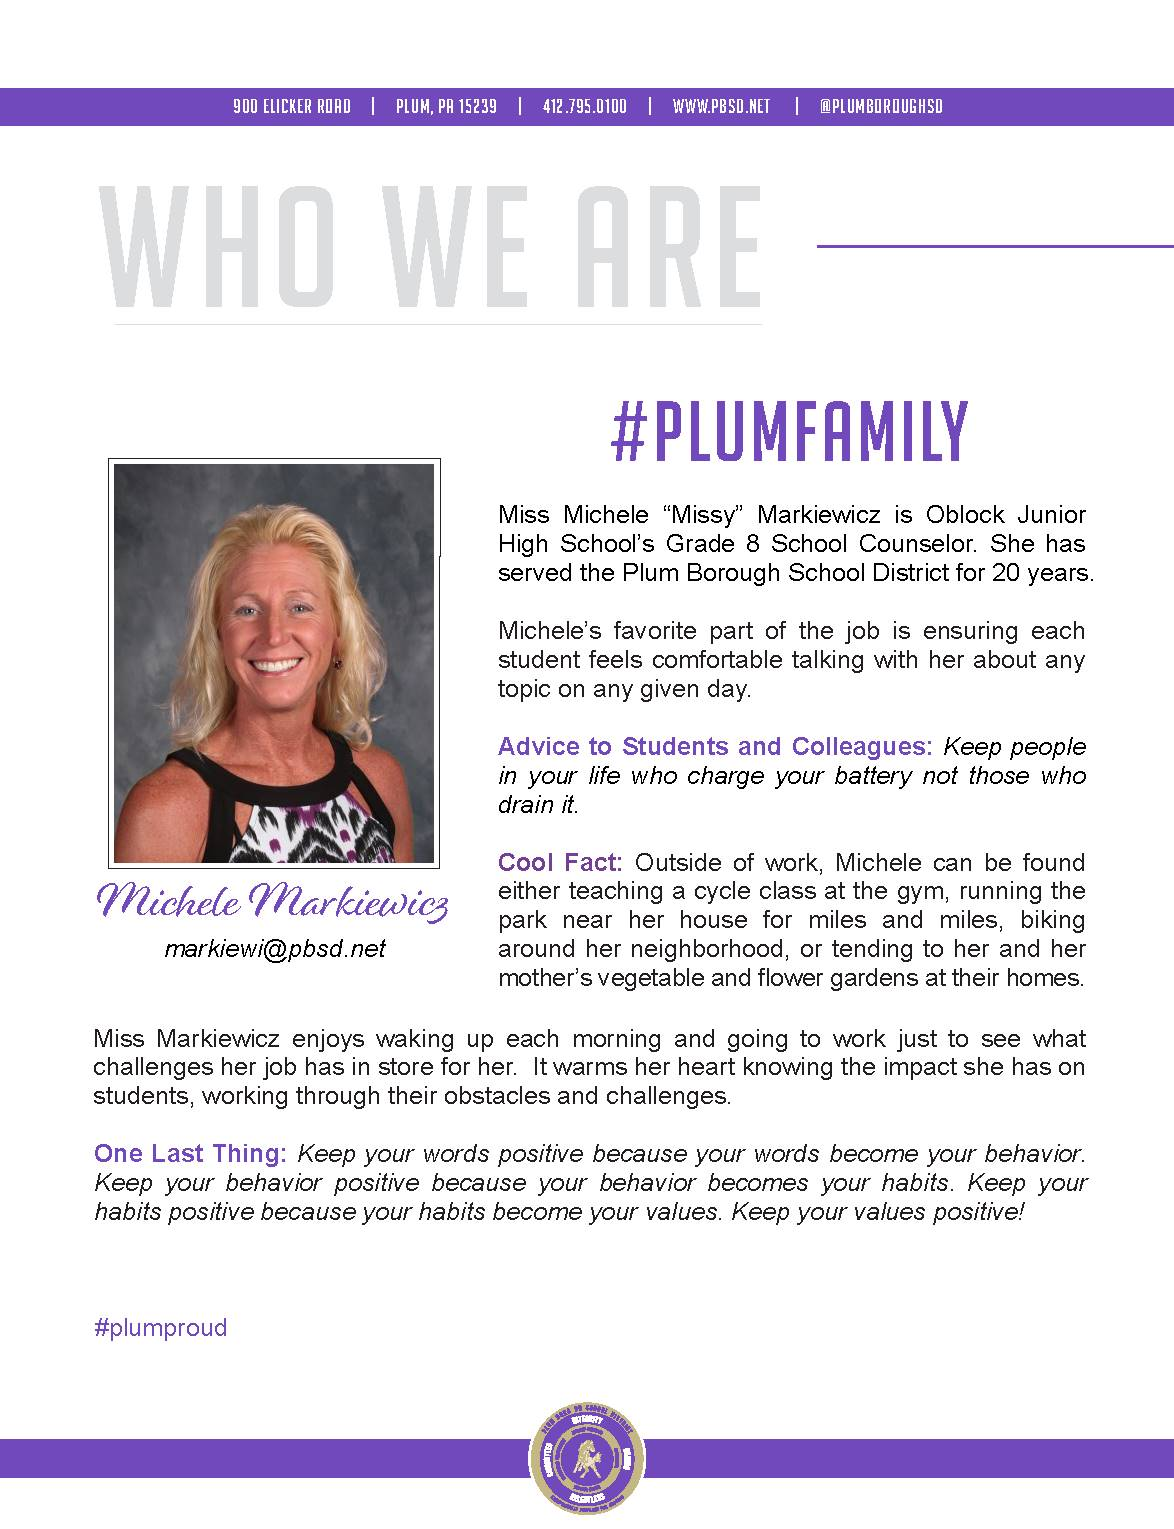 Who We Are Wednesday features Michele Markiewicz.